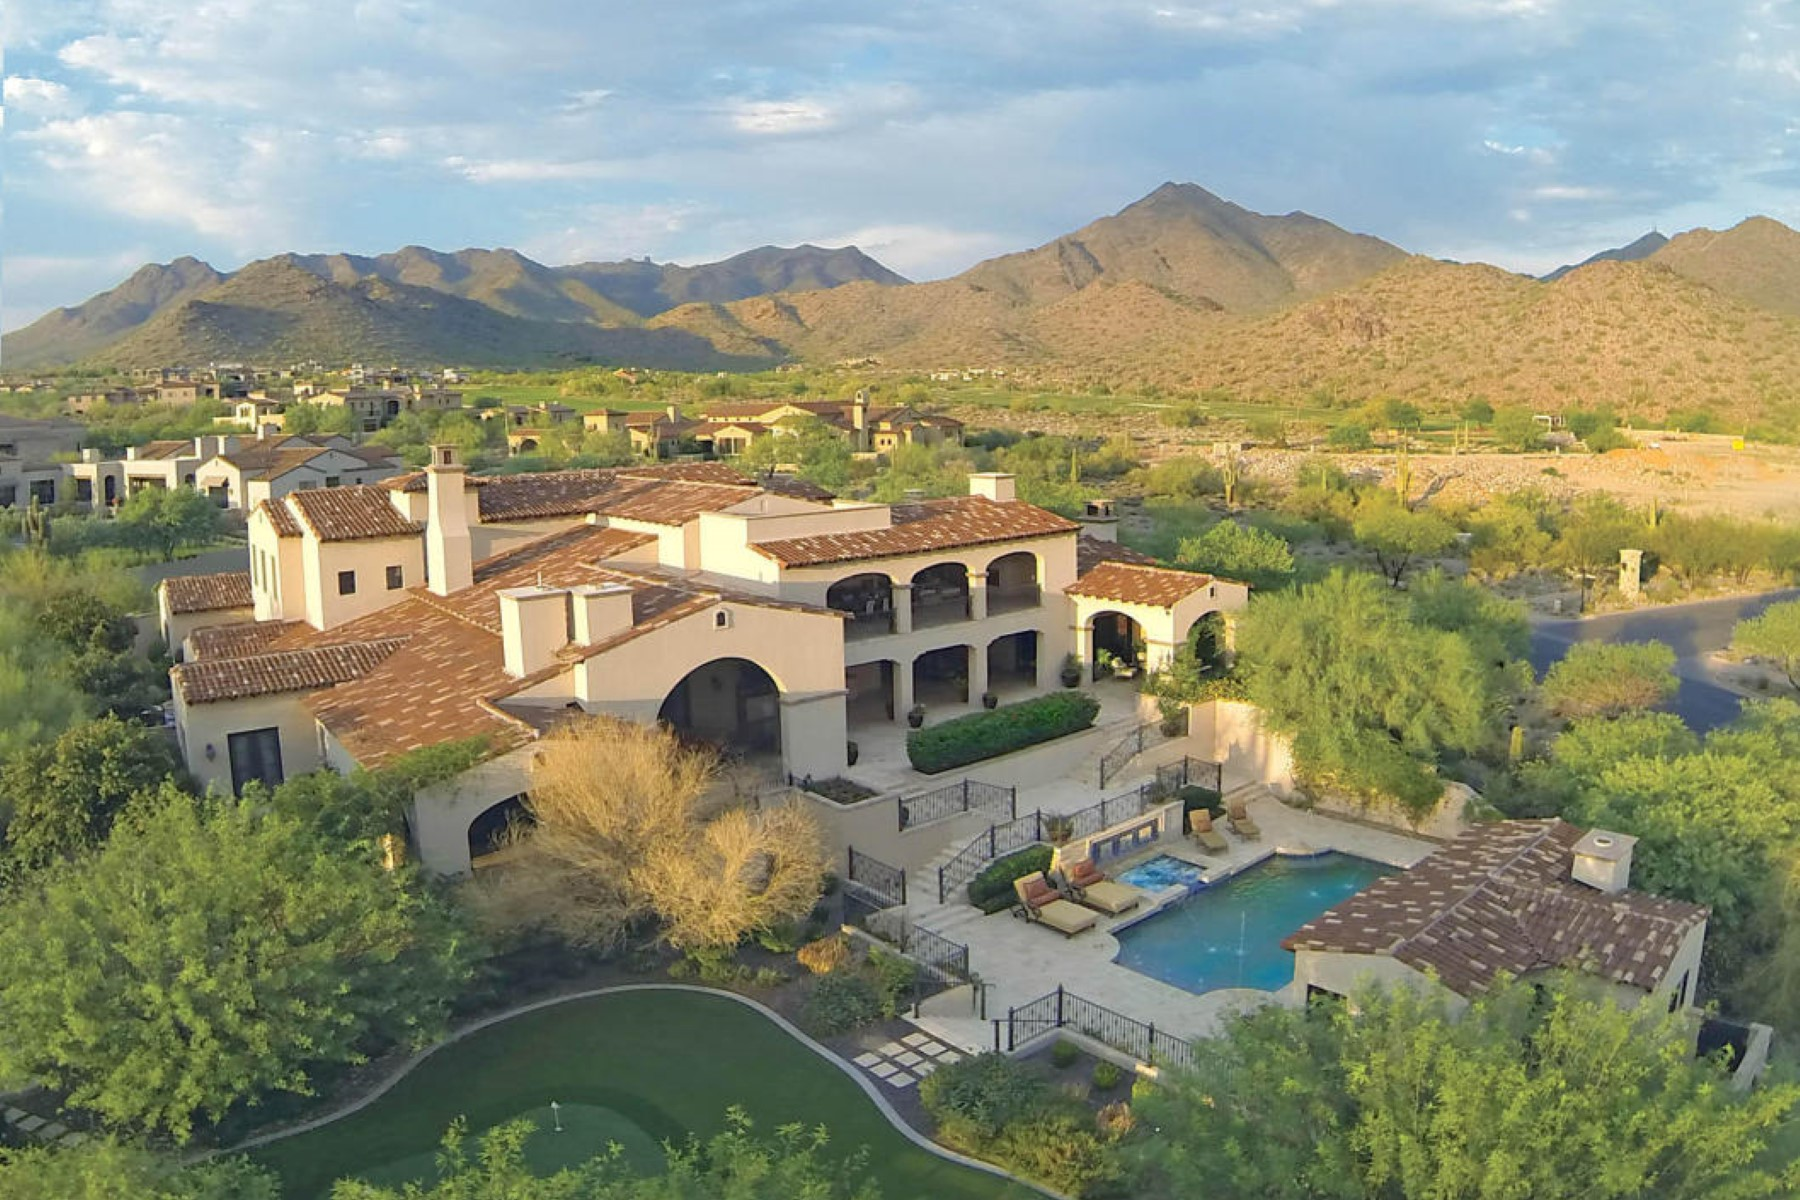 Single Family Home for Sale at Stunning Bing Hu estate offers sweeping mountain and city views 19042 N 102nd St Scottsdale, Arizona 85255 United States